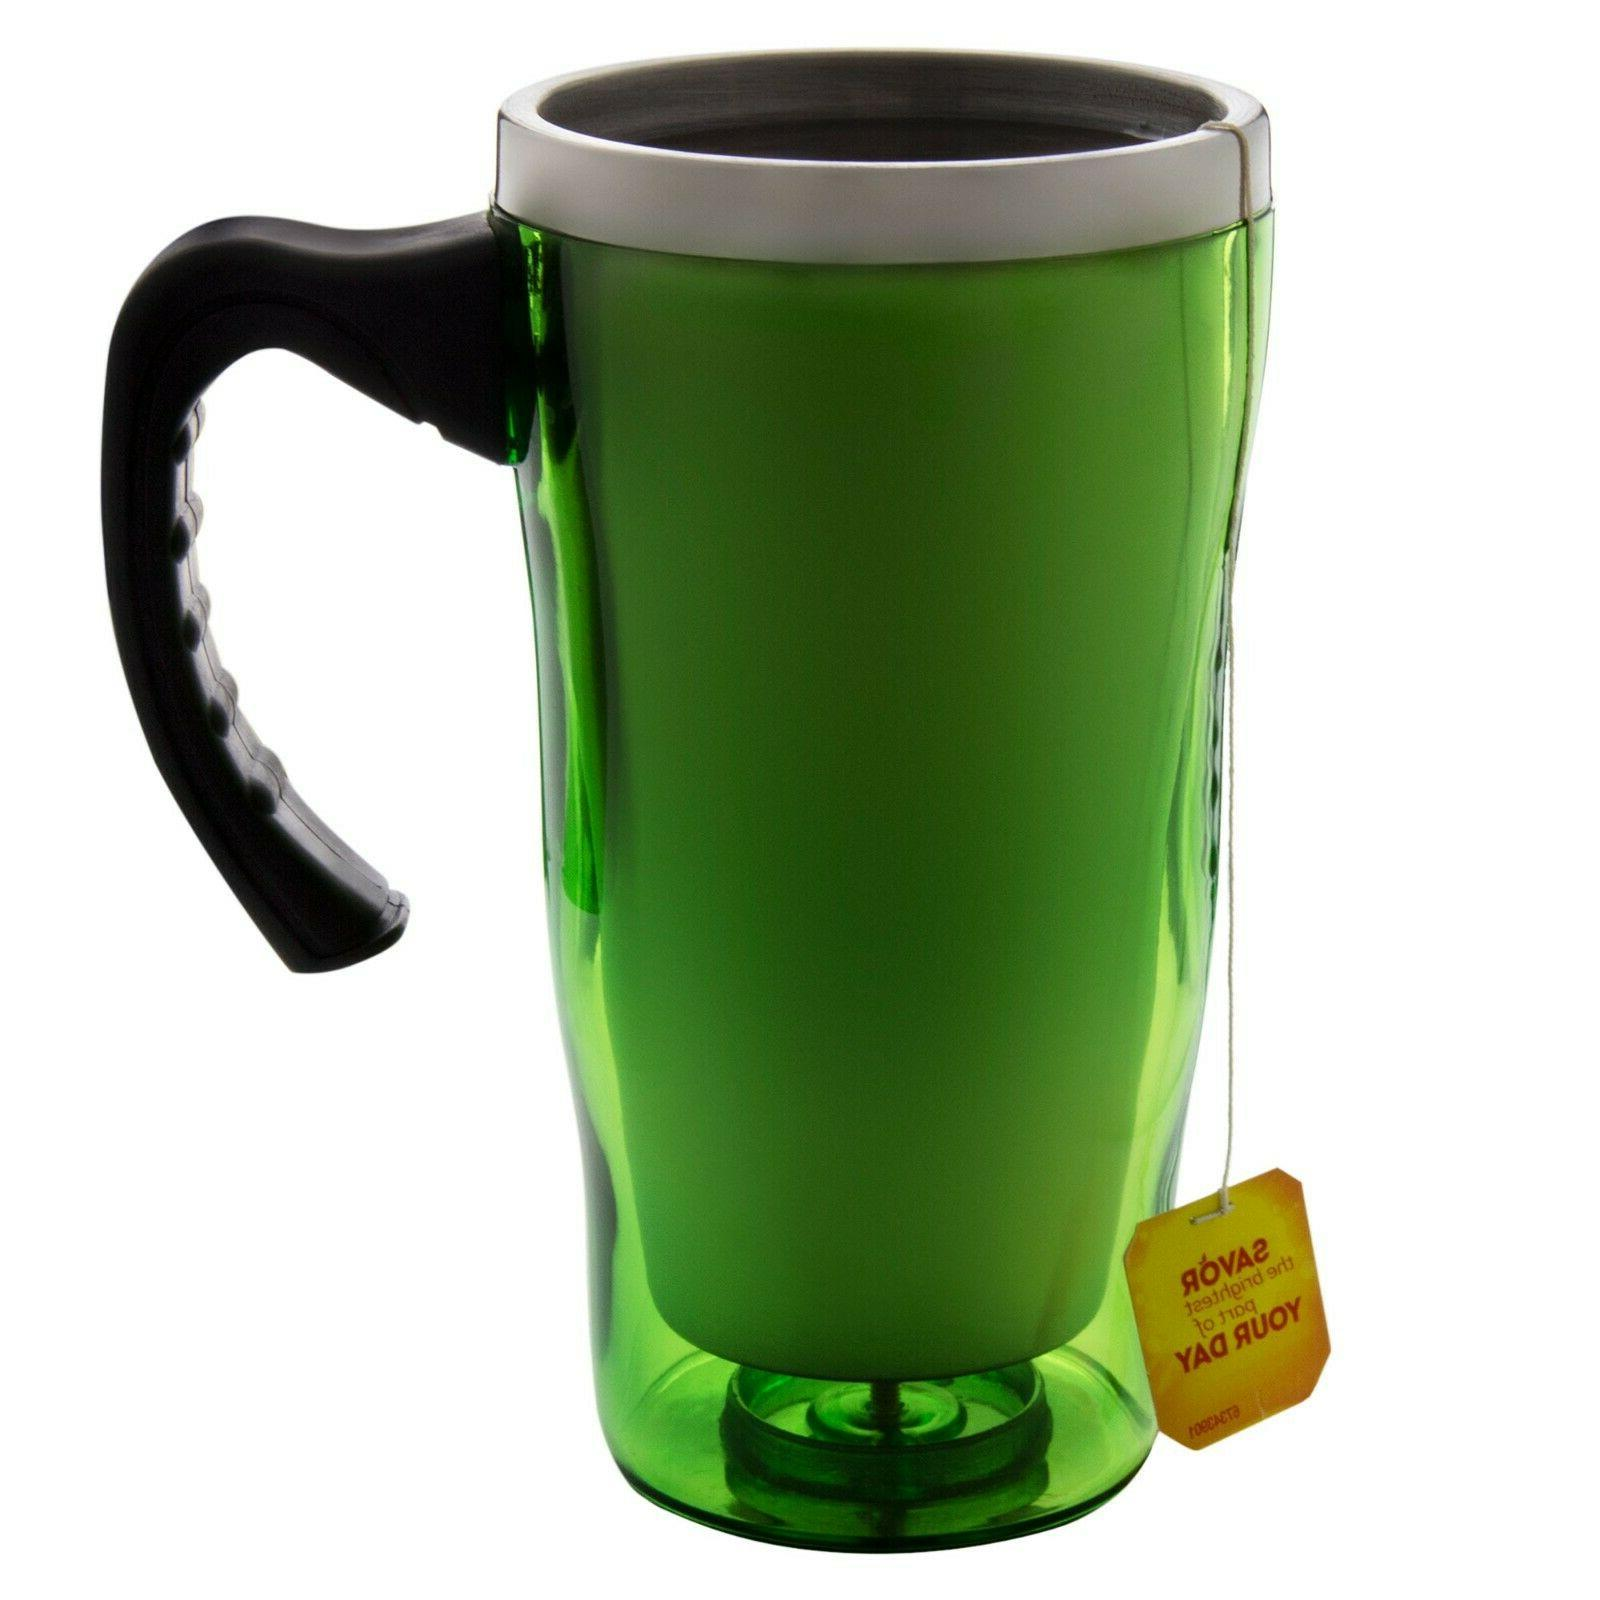 stainless steel travel coffee mug with handle